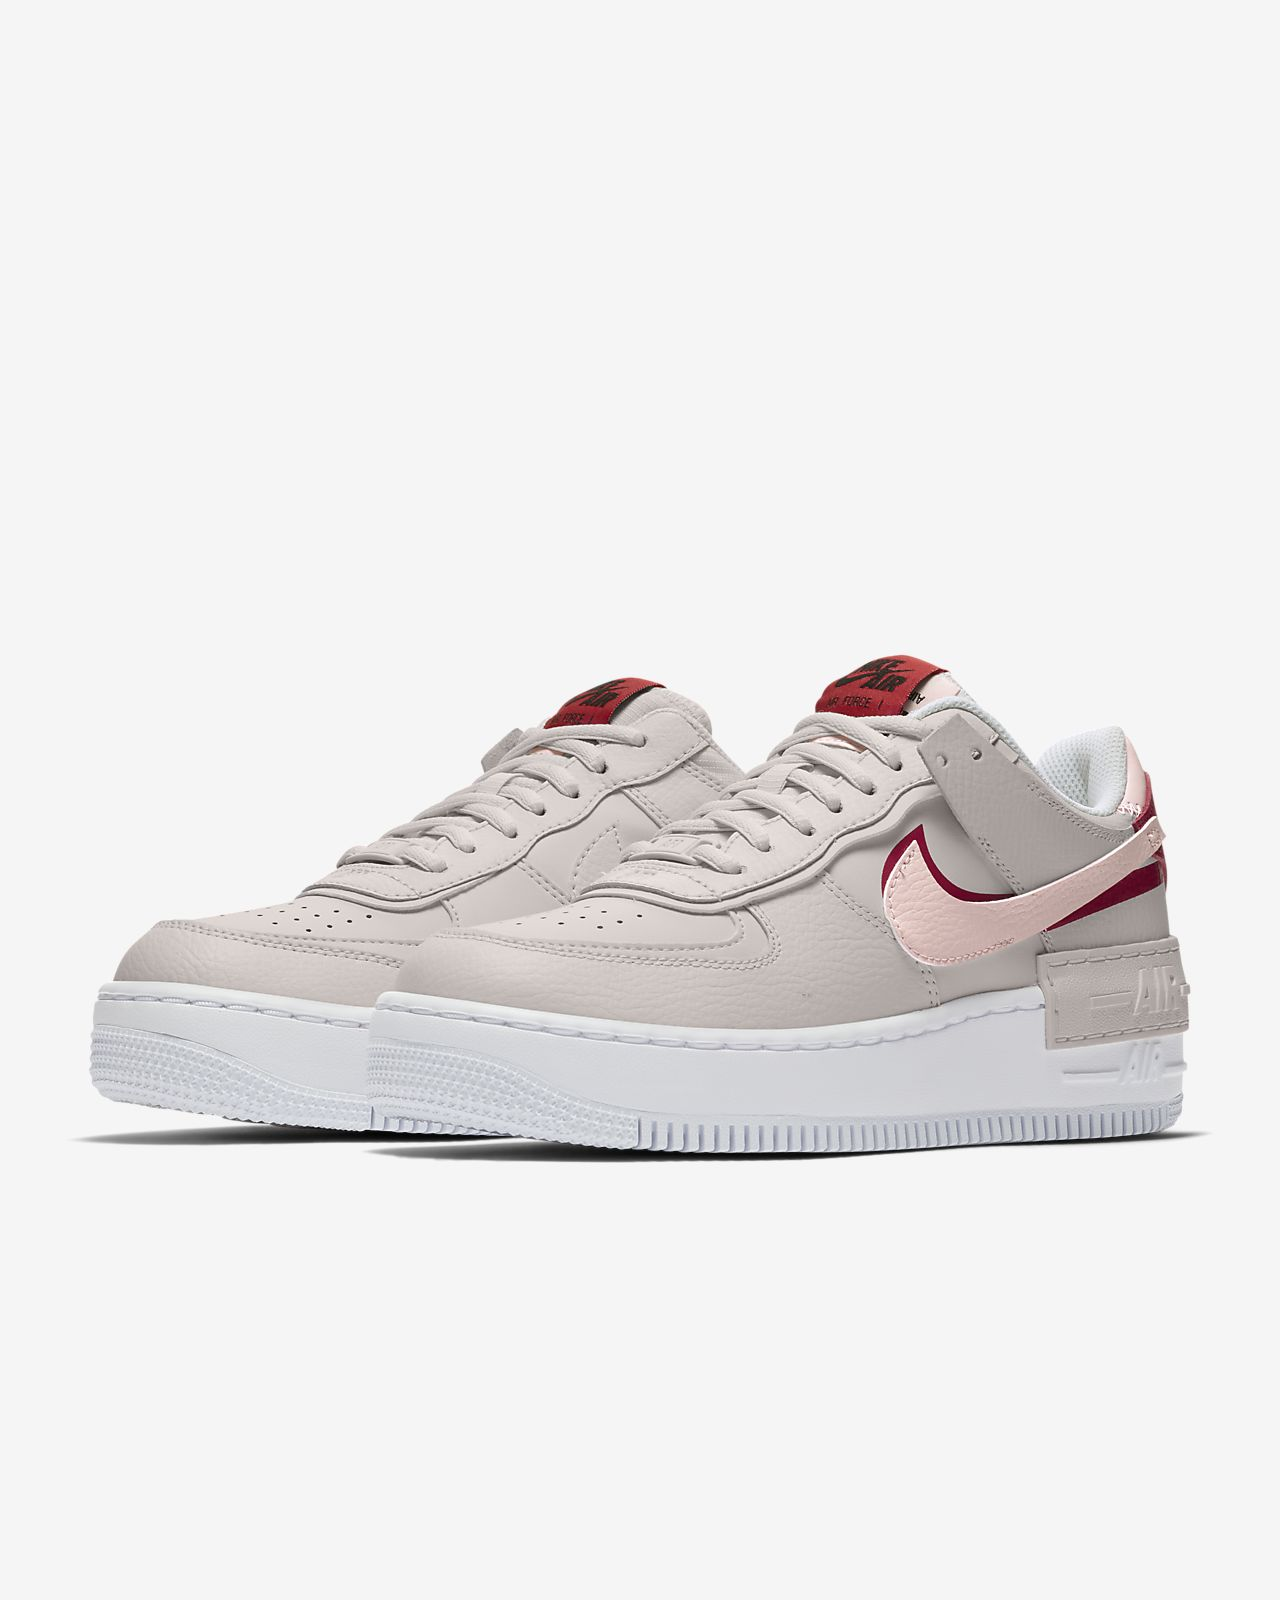 nike air force 1 rouge et blanche femme